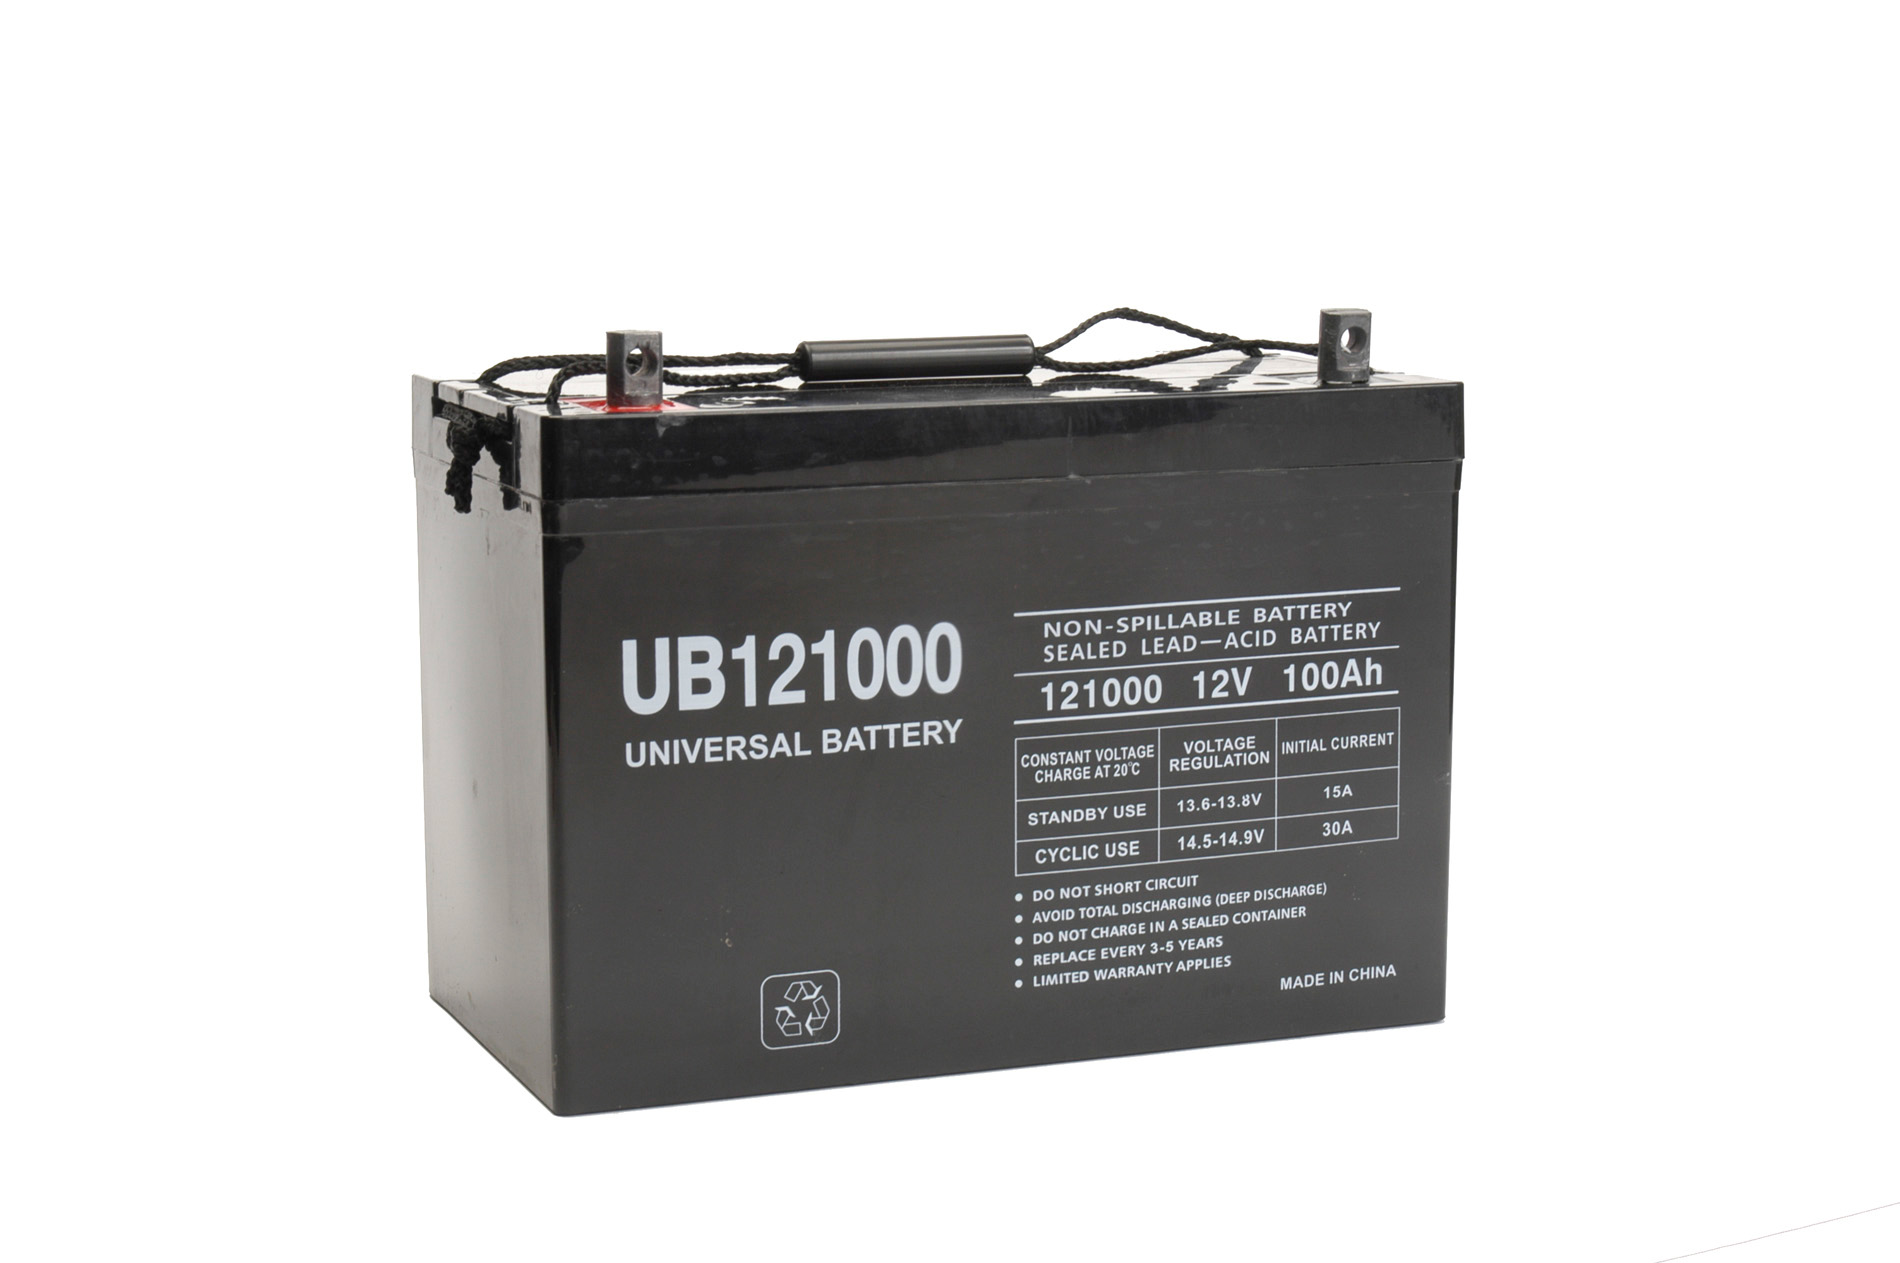 Upg 45978 Ub121000 Group 27 Sealed Lead Acid Battery 9v Regulated Power Supply Schematic